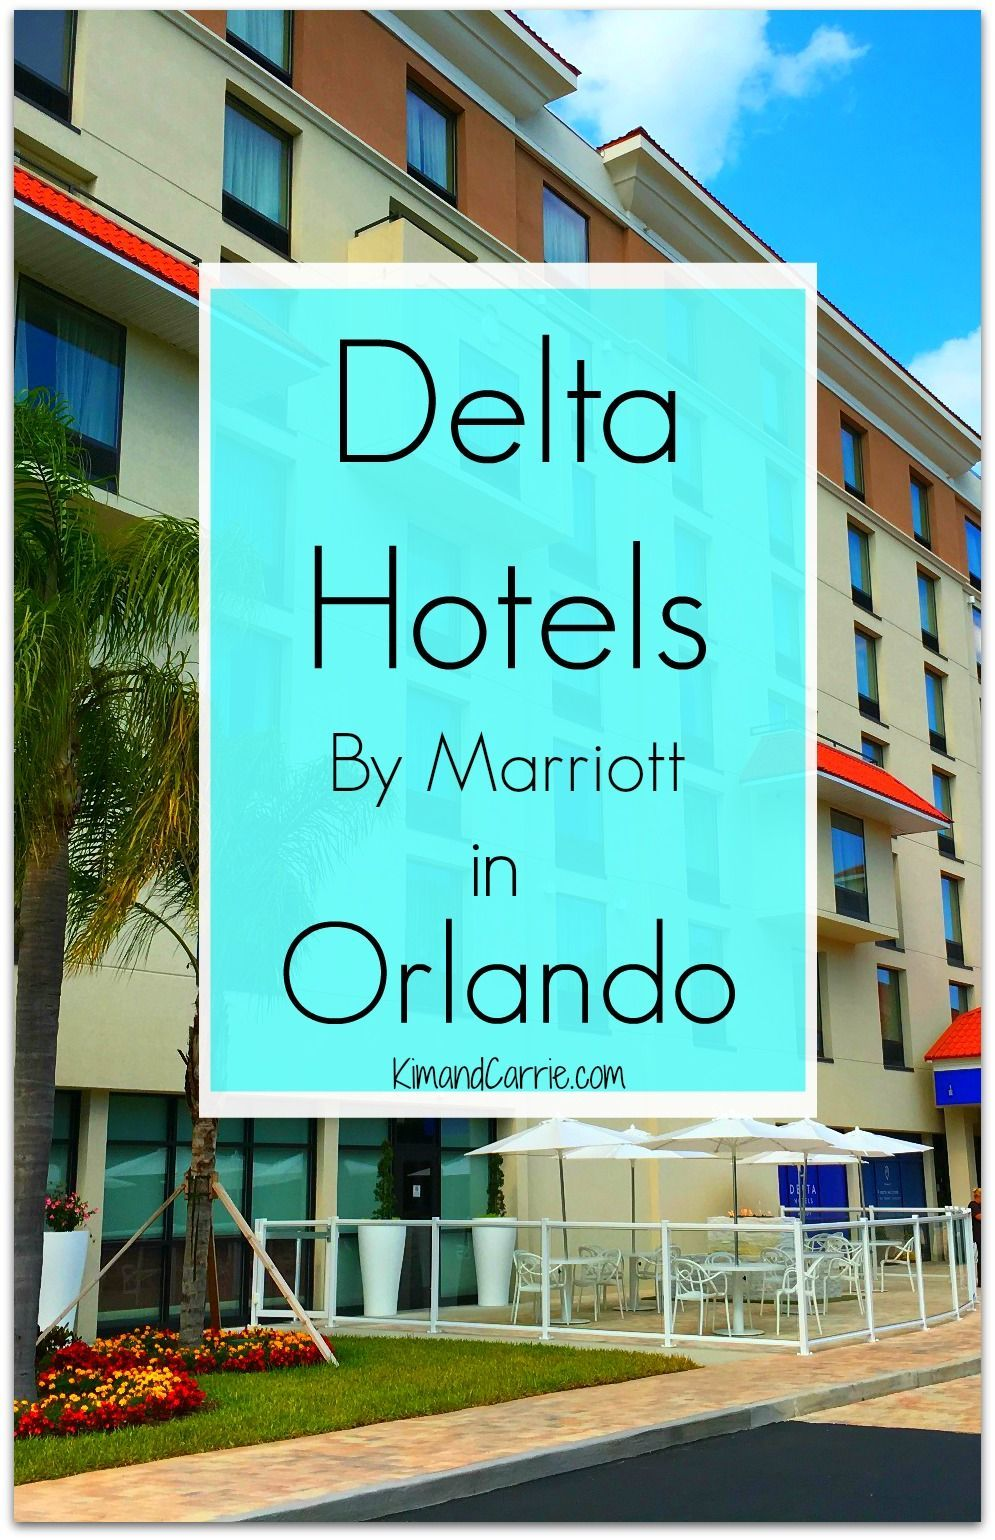 Hotels Opens in Orlando - First Outside of Canada Beloved Canadian brand Delta Hotels opened its first location in the U.S. in Orlando, Florida. Located just outside of Disney Springs, this Marriott hotel is conveniently located to Walt Disney World Resort and central Florida theme parks.Beloved Canadian brand Delta Hotels ...